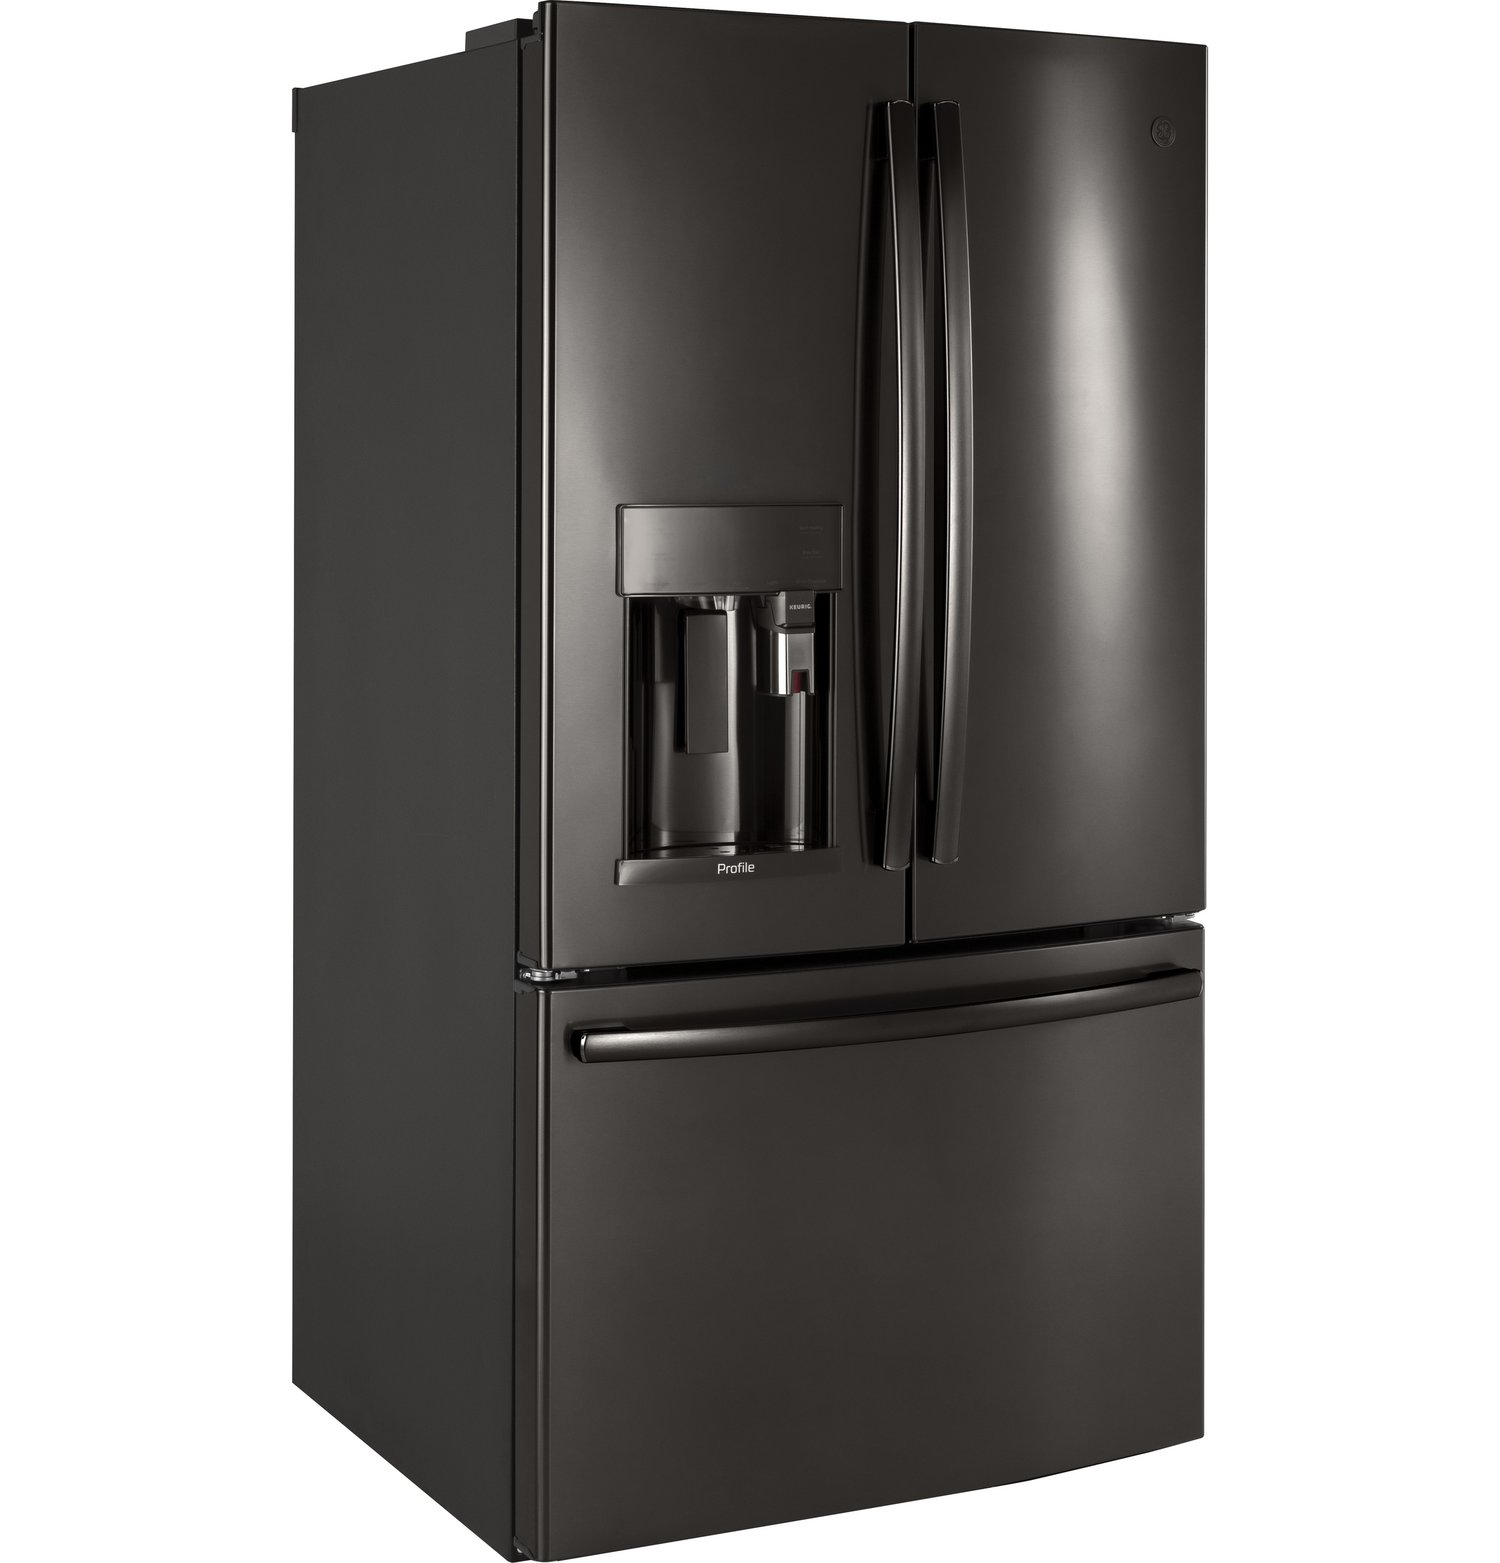 Pfe28pblts ge profile series energy star 278 cu ft french pfe28pblts ge profile series energy star 278 cu ft french door refrigerator with keurig k cup brewing system black stainless rubansaba